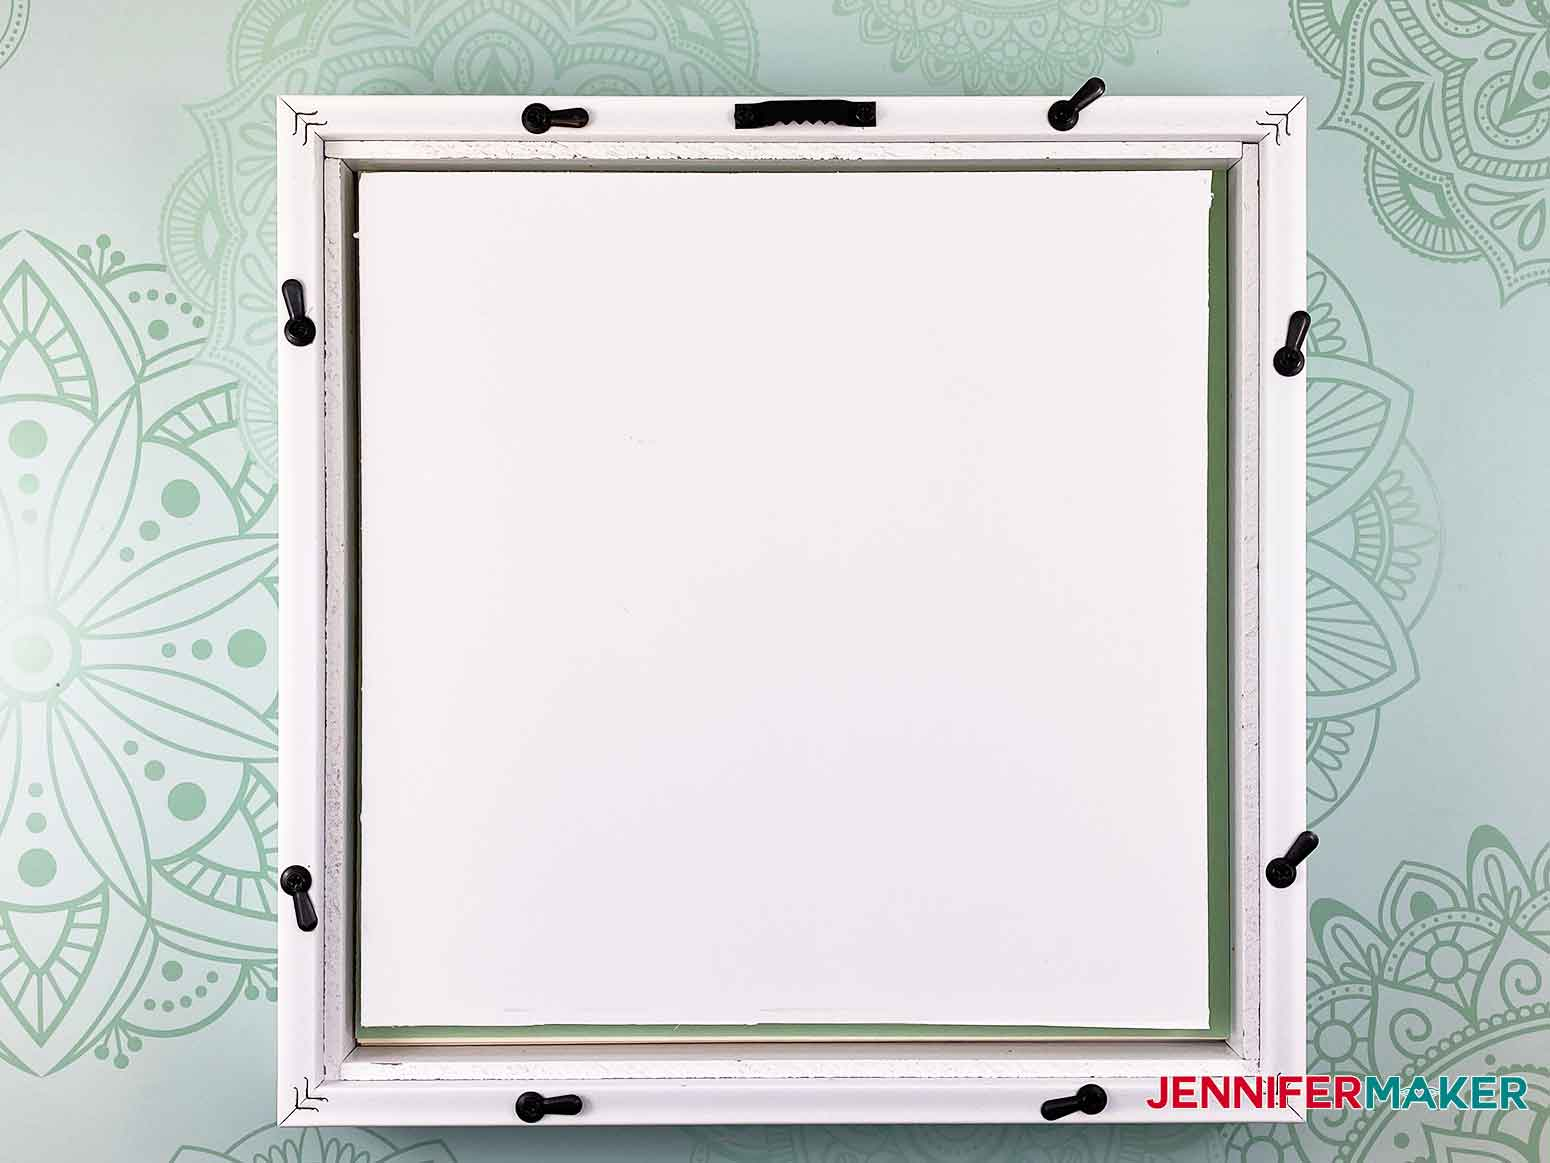 Add foam core to fill up the empty space in the frame for the 3D layered paper cut art flower